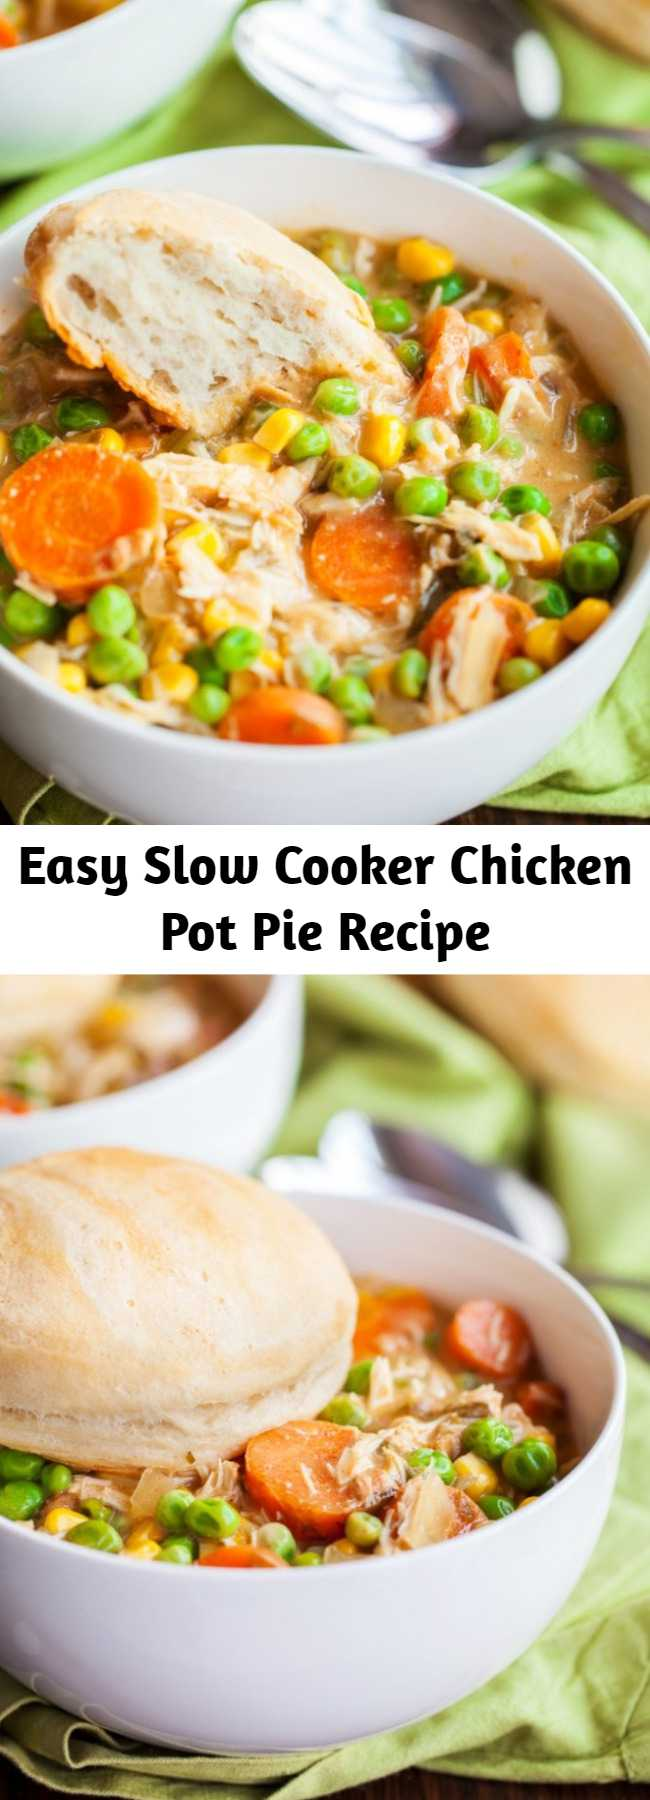 Easy Slow Cooker Chicken Pot Pie Recipe - Create a delicious mouth-watering Slow Cooker Chicken Pot Pie! This recipe is ridiculously easy, jam-packed with flavor, and one of my families favorite dishes. The seasoned pulled chicken and fresh cut veggies marinated in spices all day creating an amazing dinner you will be proud to serve up!